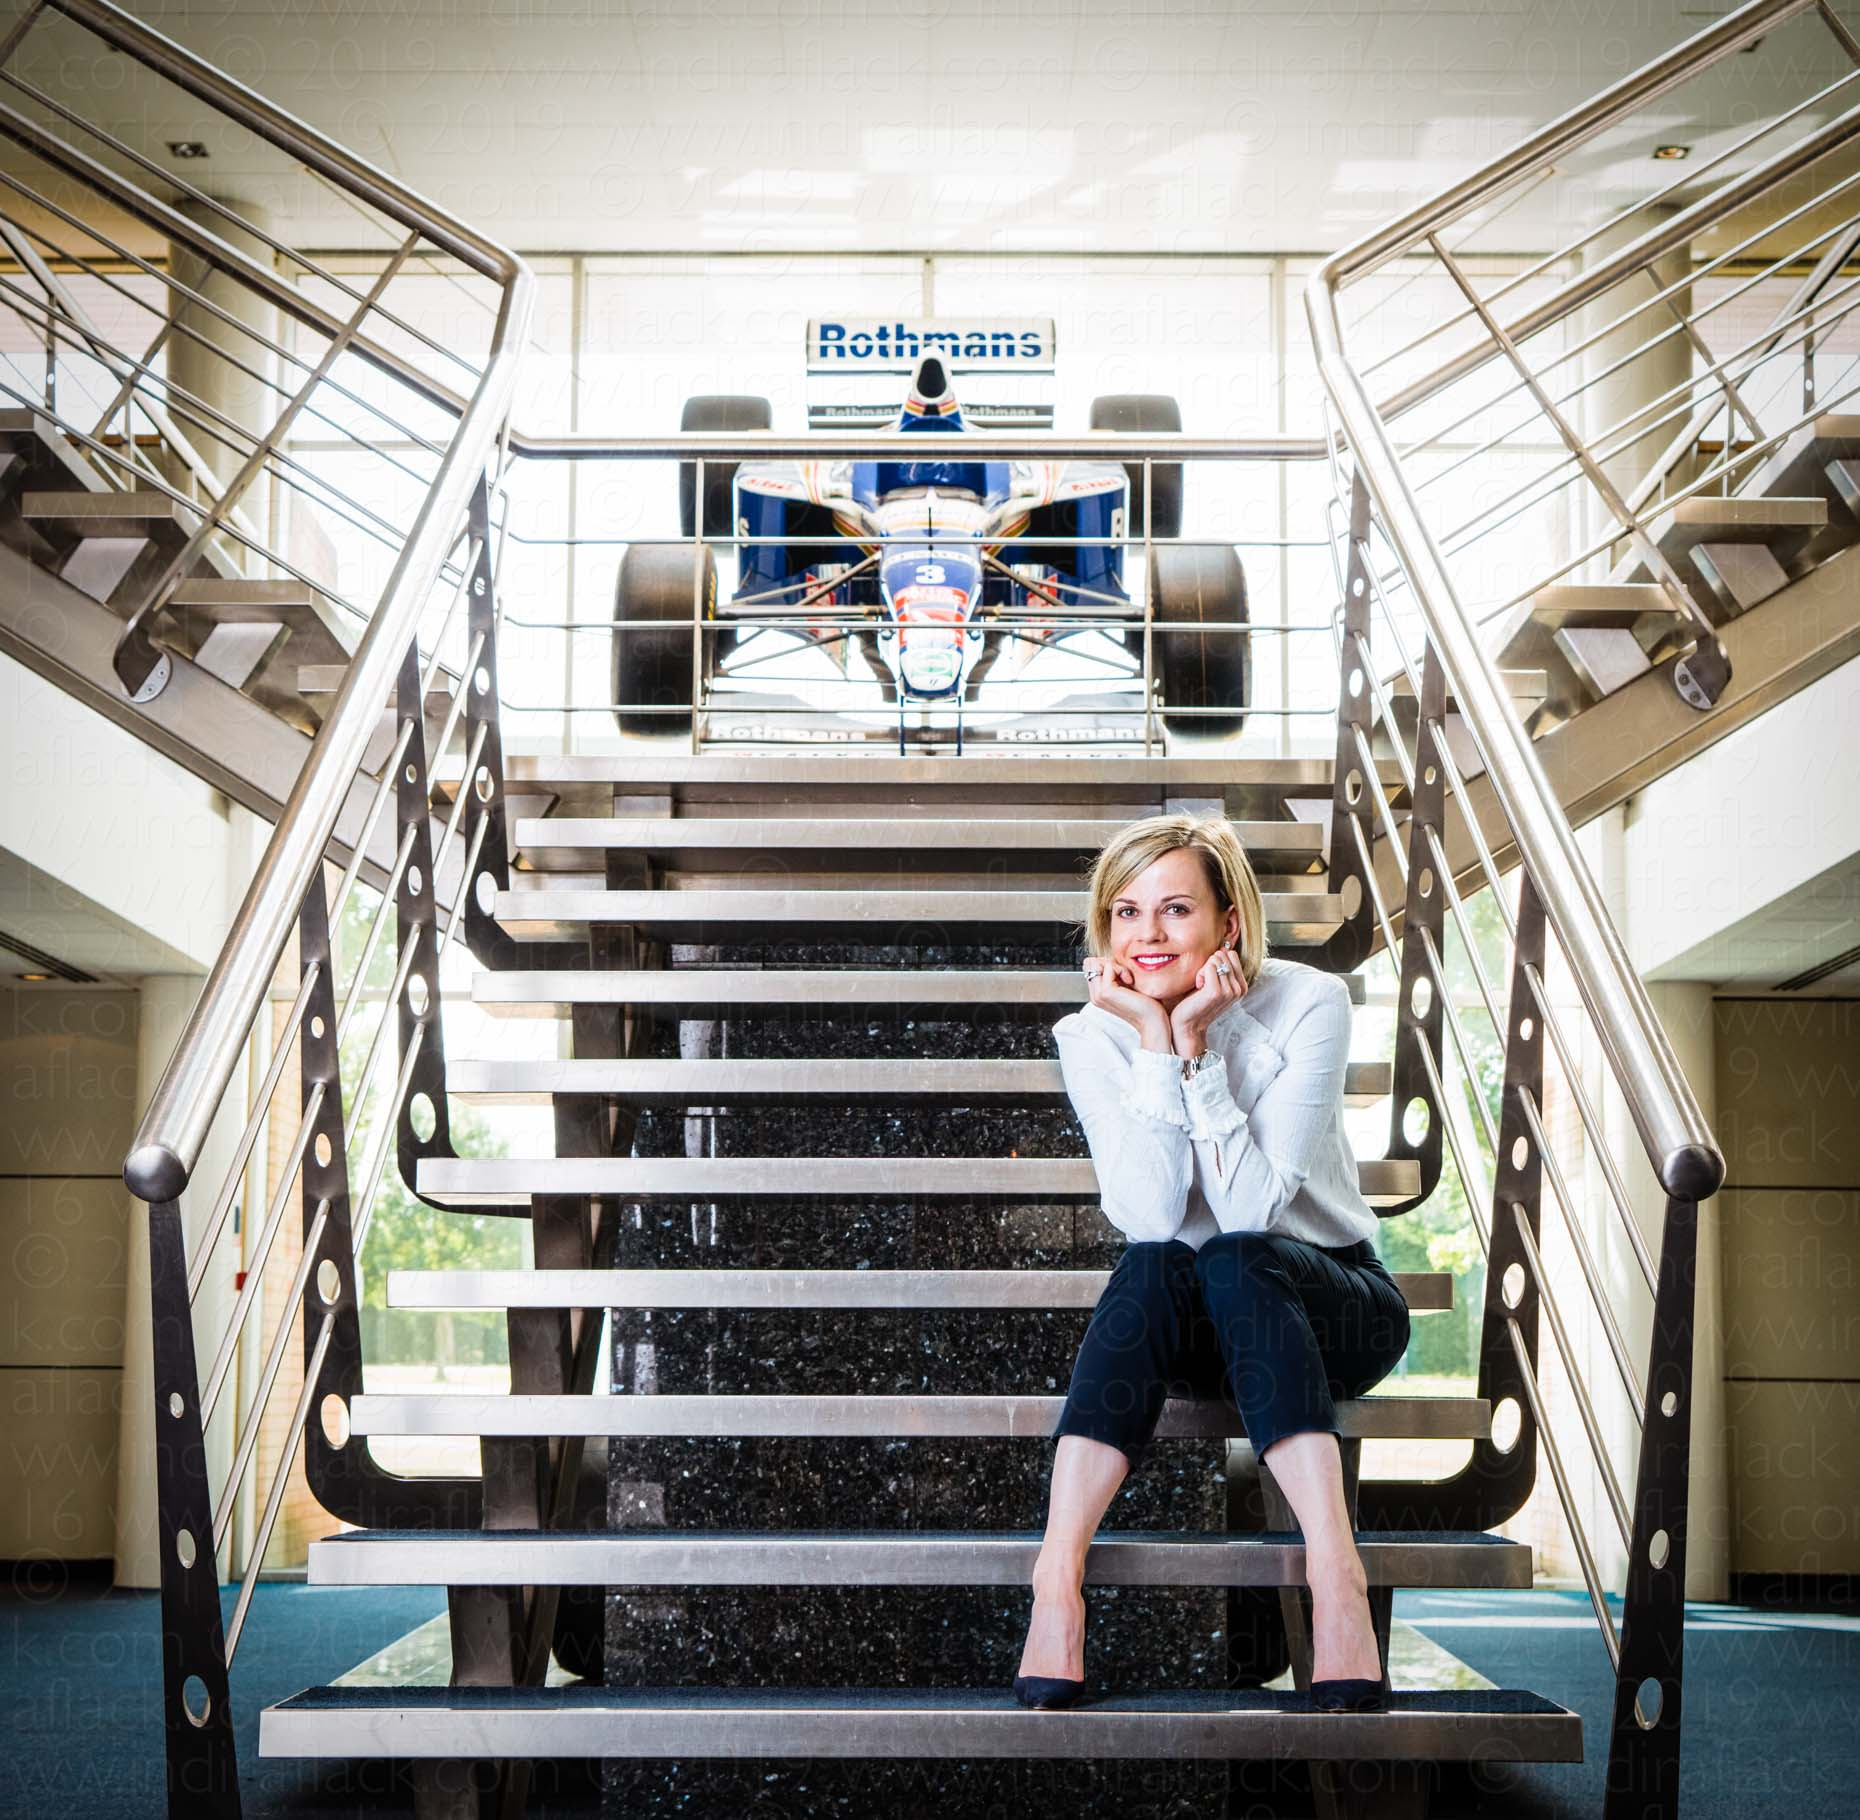 Susie Wolff portrait by Indira Flack for the Great British Racing Drivers Exhibition